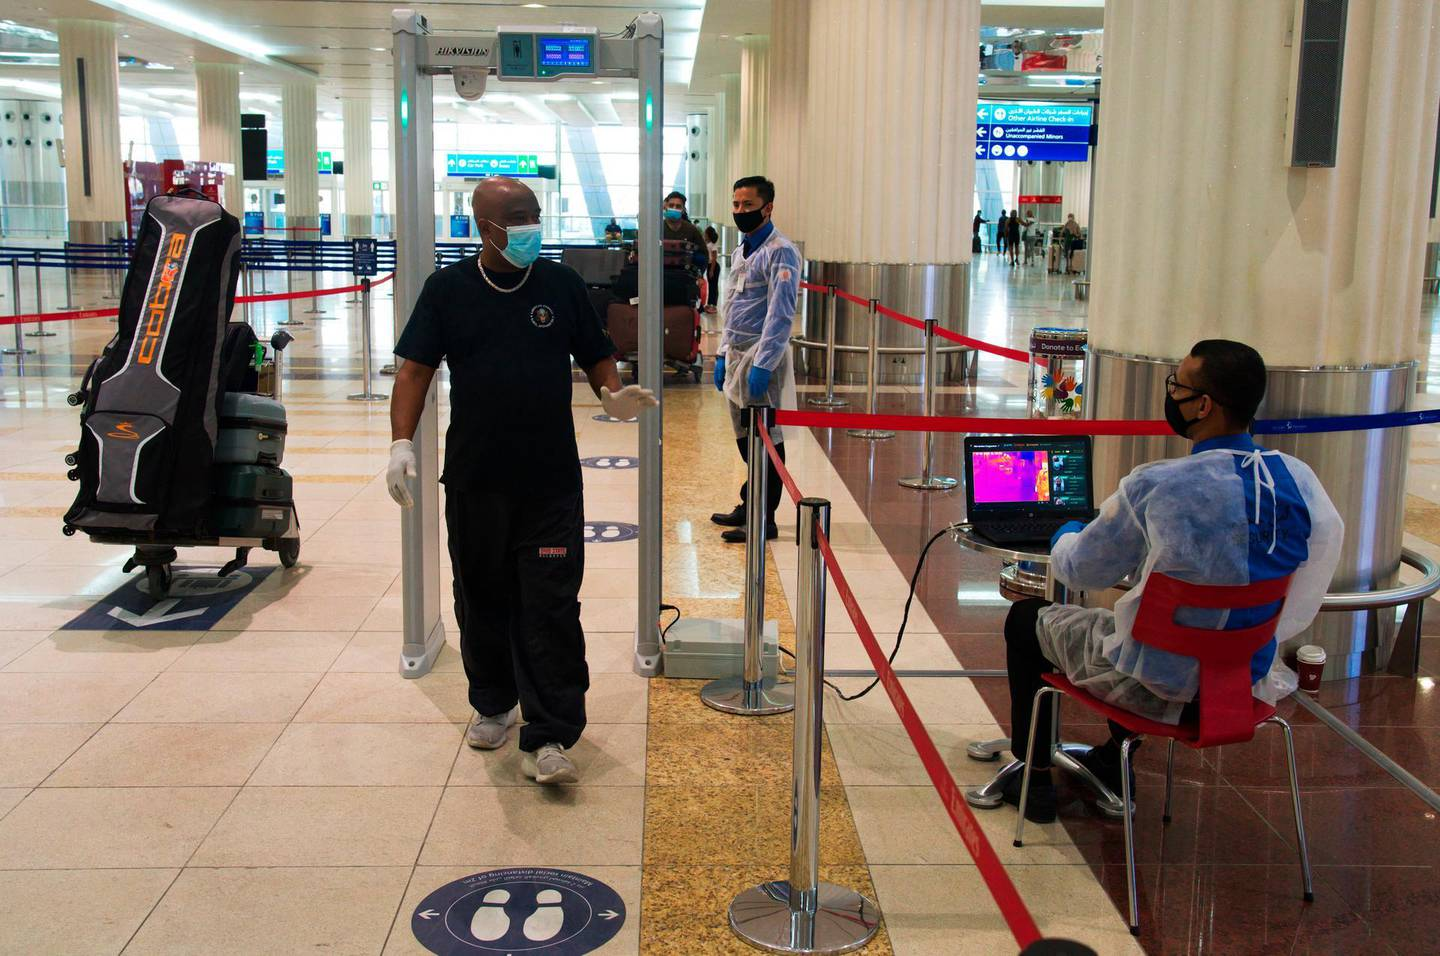 A passenger wearing a mask due to the coronavirus pandemic passes through a temperature screening at Dubai International Airport's Terminal 3 in Dubai, United Arab Emirates, Wednesday, June 10, 2020. The coronavirus pandemic has hit global aviation hard, particularly at Dubai International Airport, the world's busiest for international travel, due to restrictions on global movement over the virus. (AP Photo/Jon Gambrell)